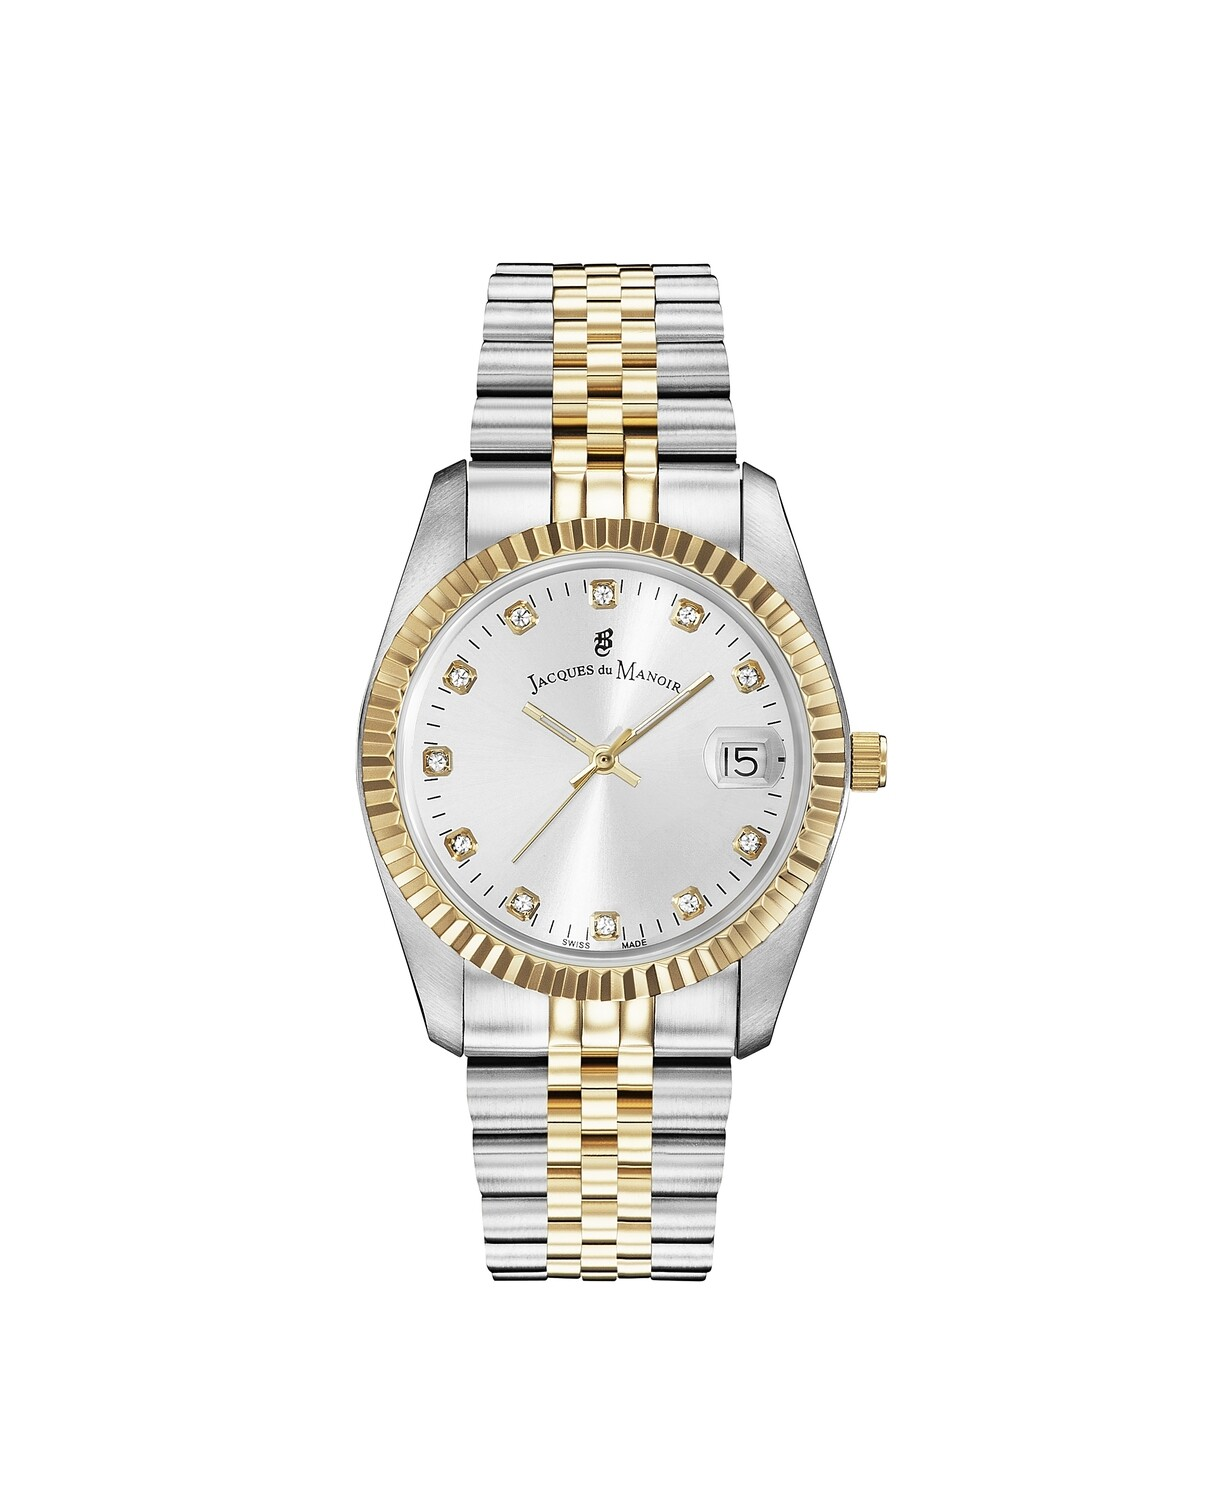 [NROP.07] Inspiration Inspiration SS IPGold Two Tone case, WHITE Dial, SS IPGold Two Tone Bracelet, 36.0 mm